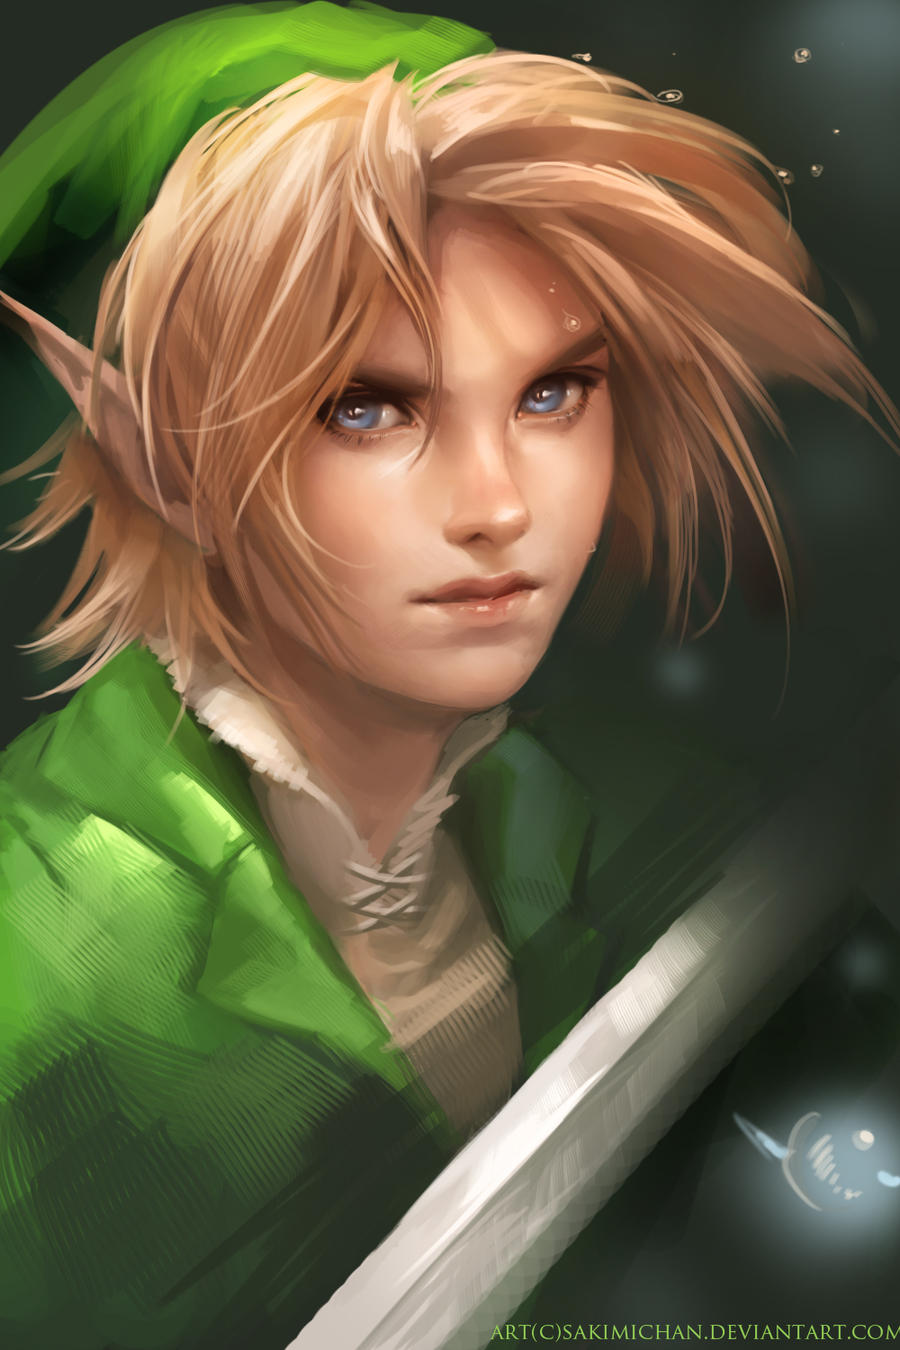 Link by sakimichan